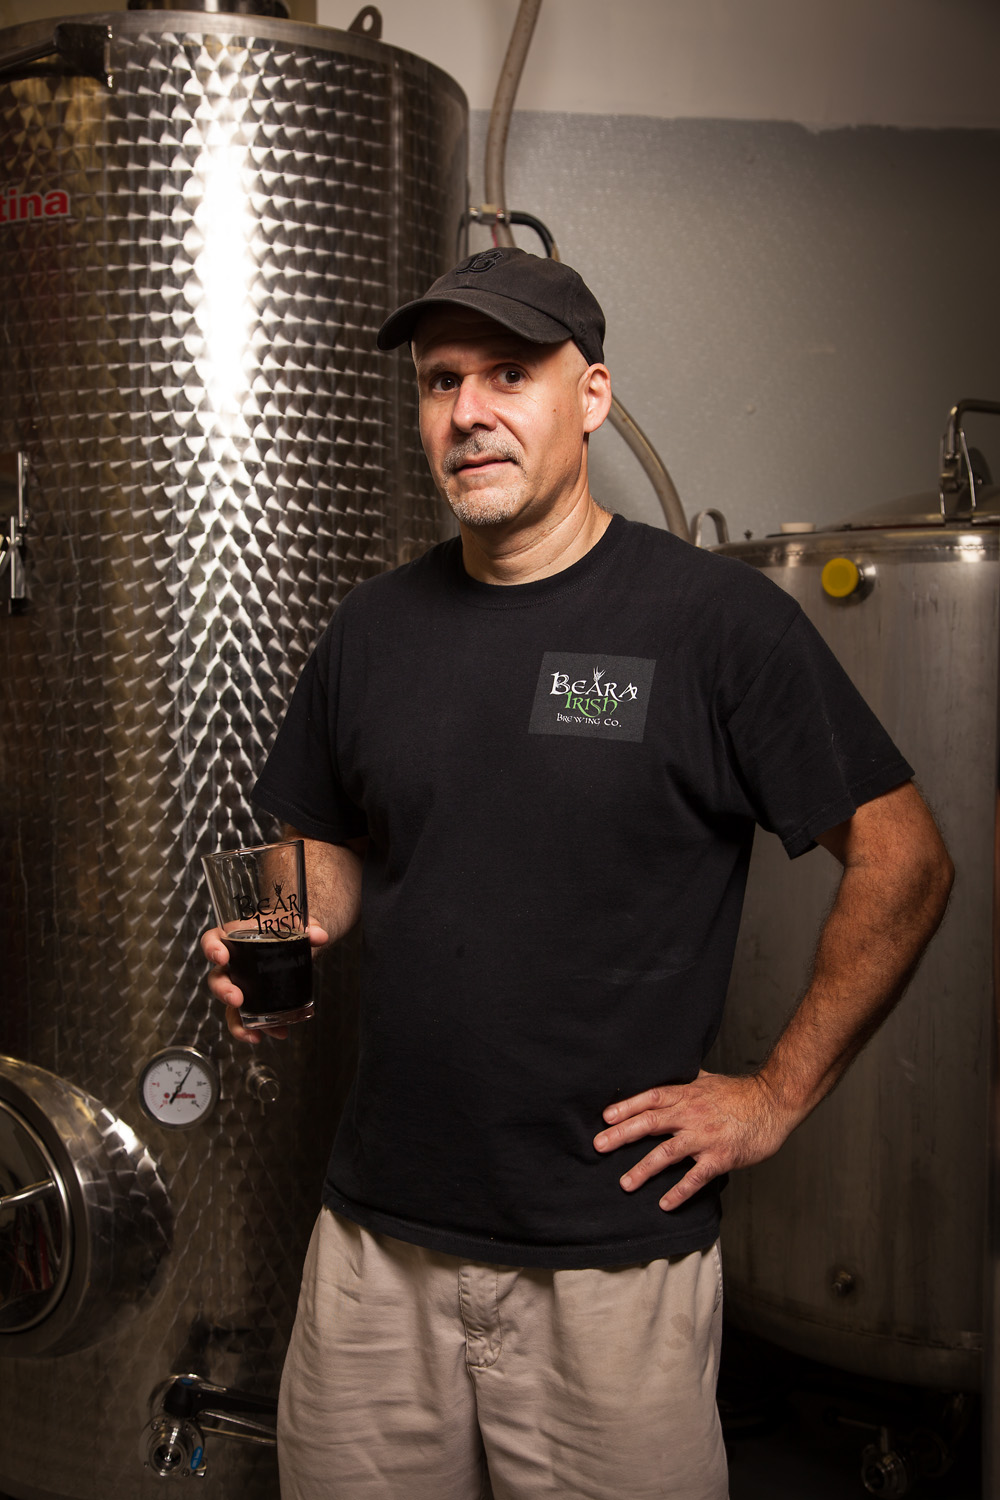 Mike Potorti, Founder and Brewmaster at Beara Irish Brewing Co. Portsmouth, NH Established in 2014